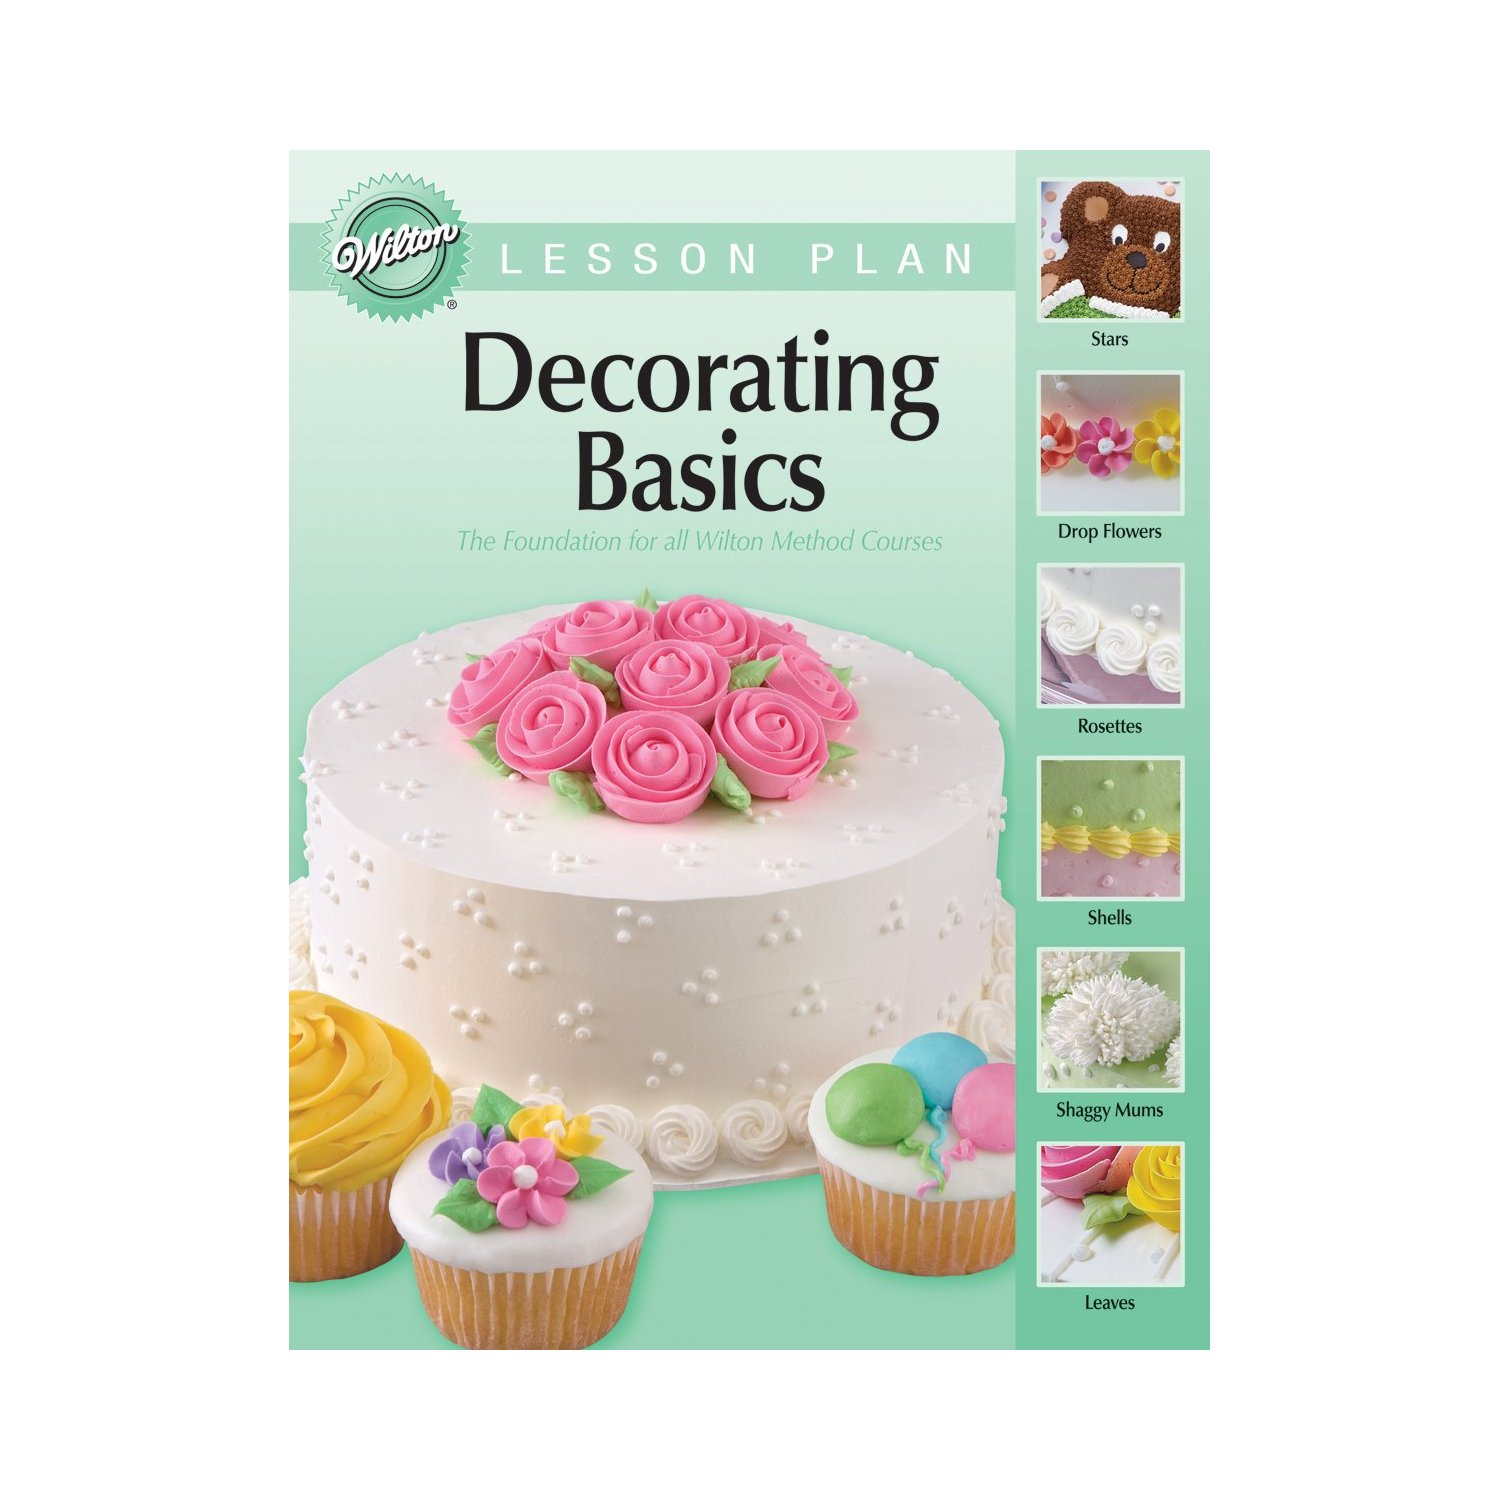 Wilton Cake Decorating Classes Uk : Wilton Decorating Basics Lesson Plan Book Publication Cake ...